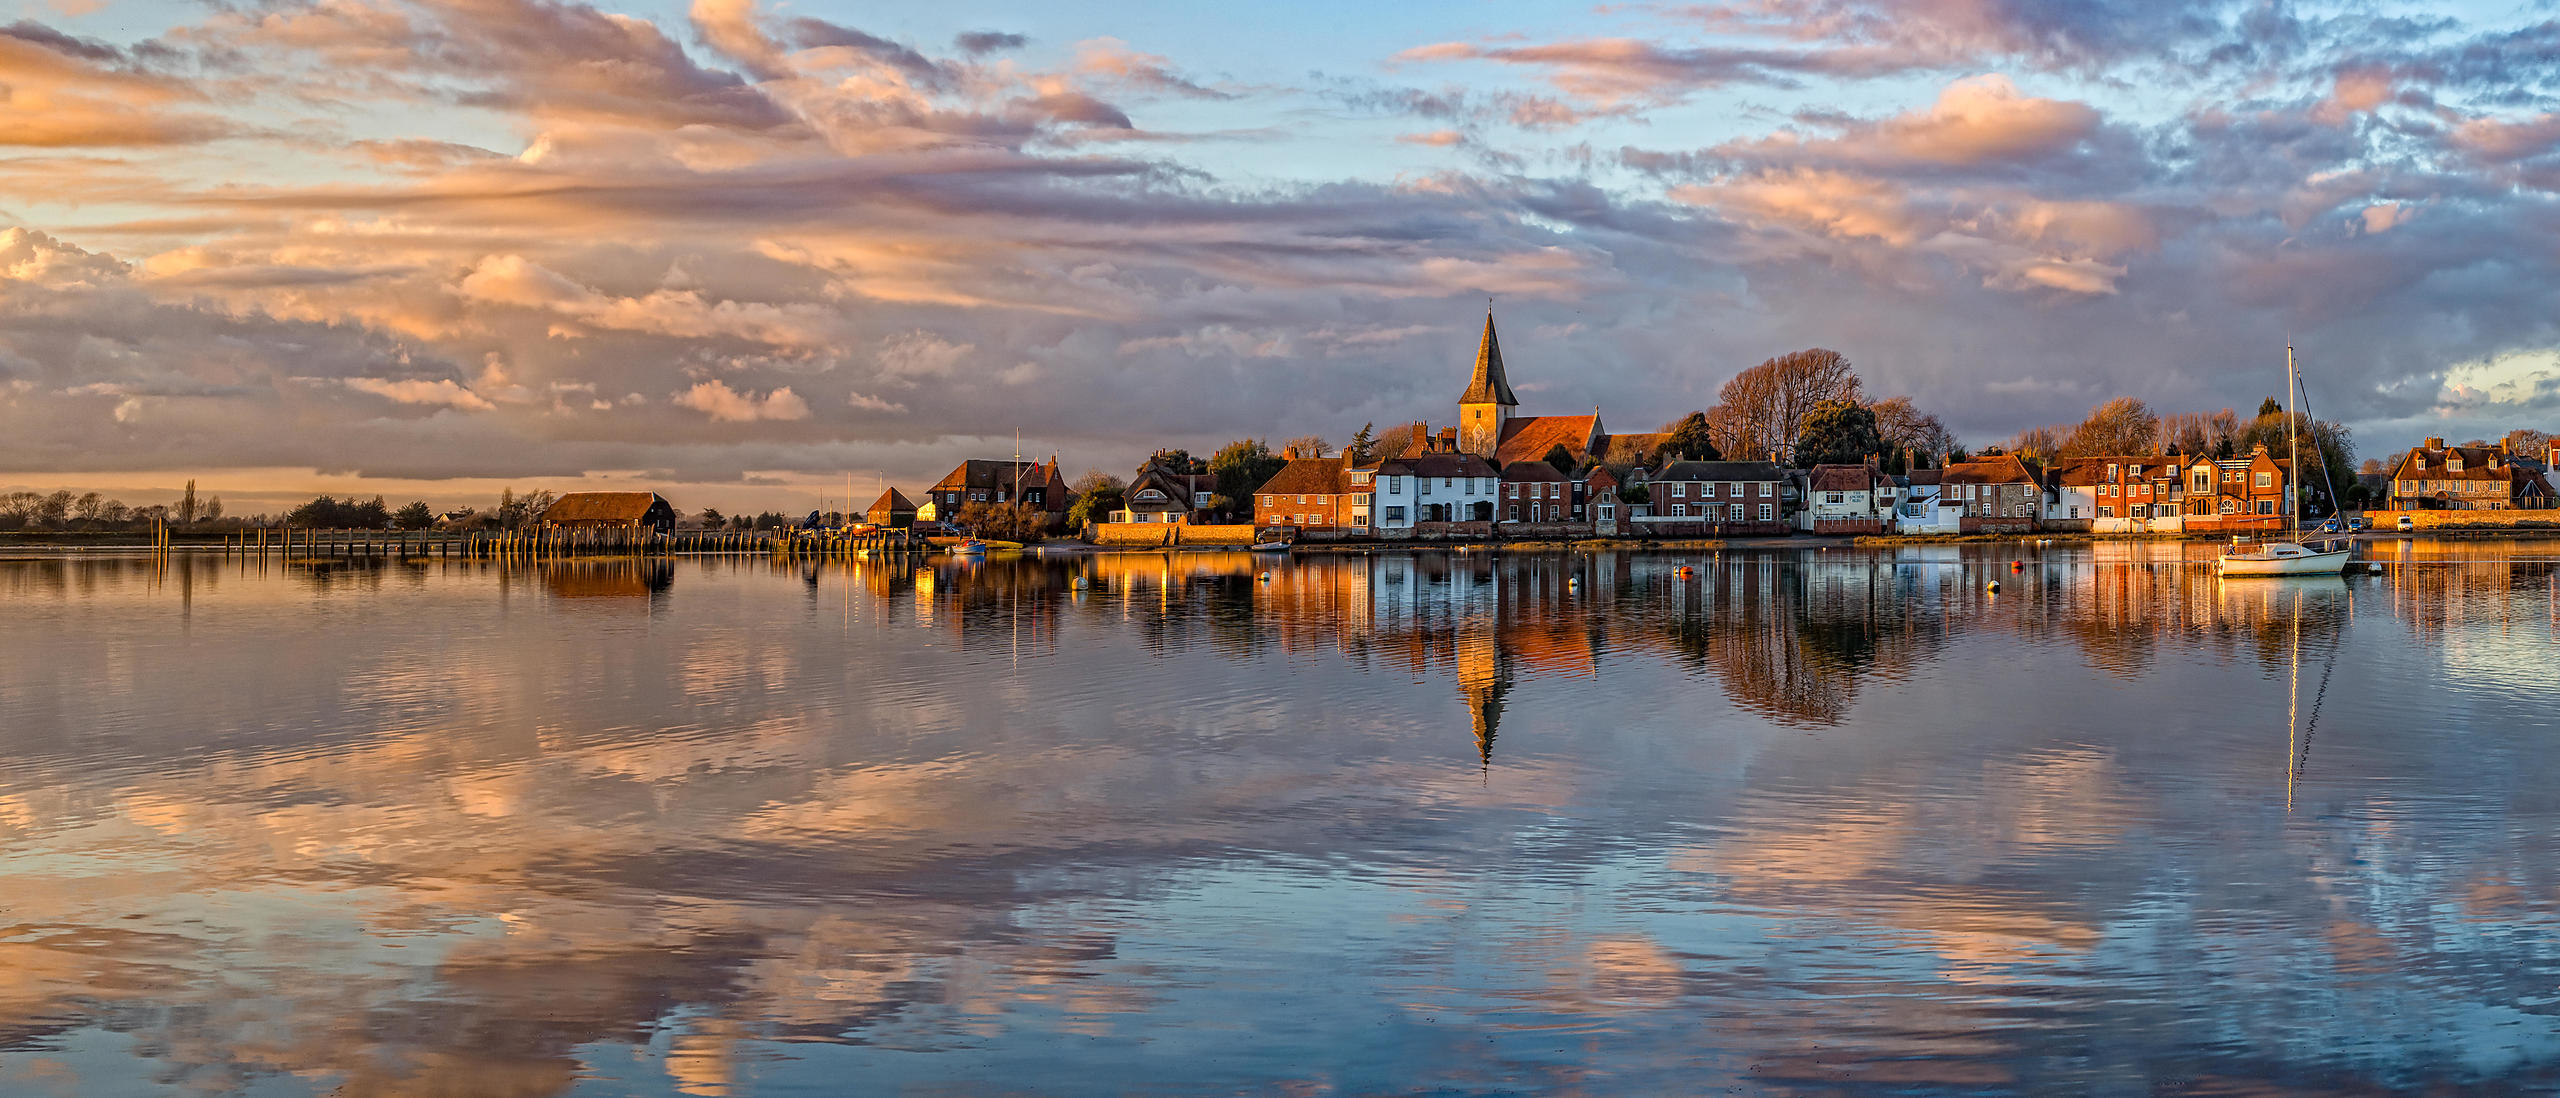 Bosham Harbour at Sunset with Golden Reflection